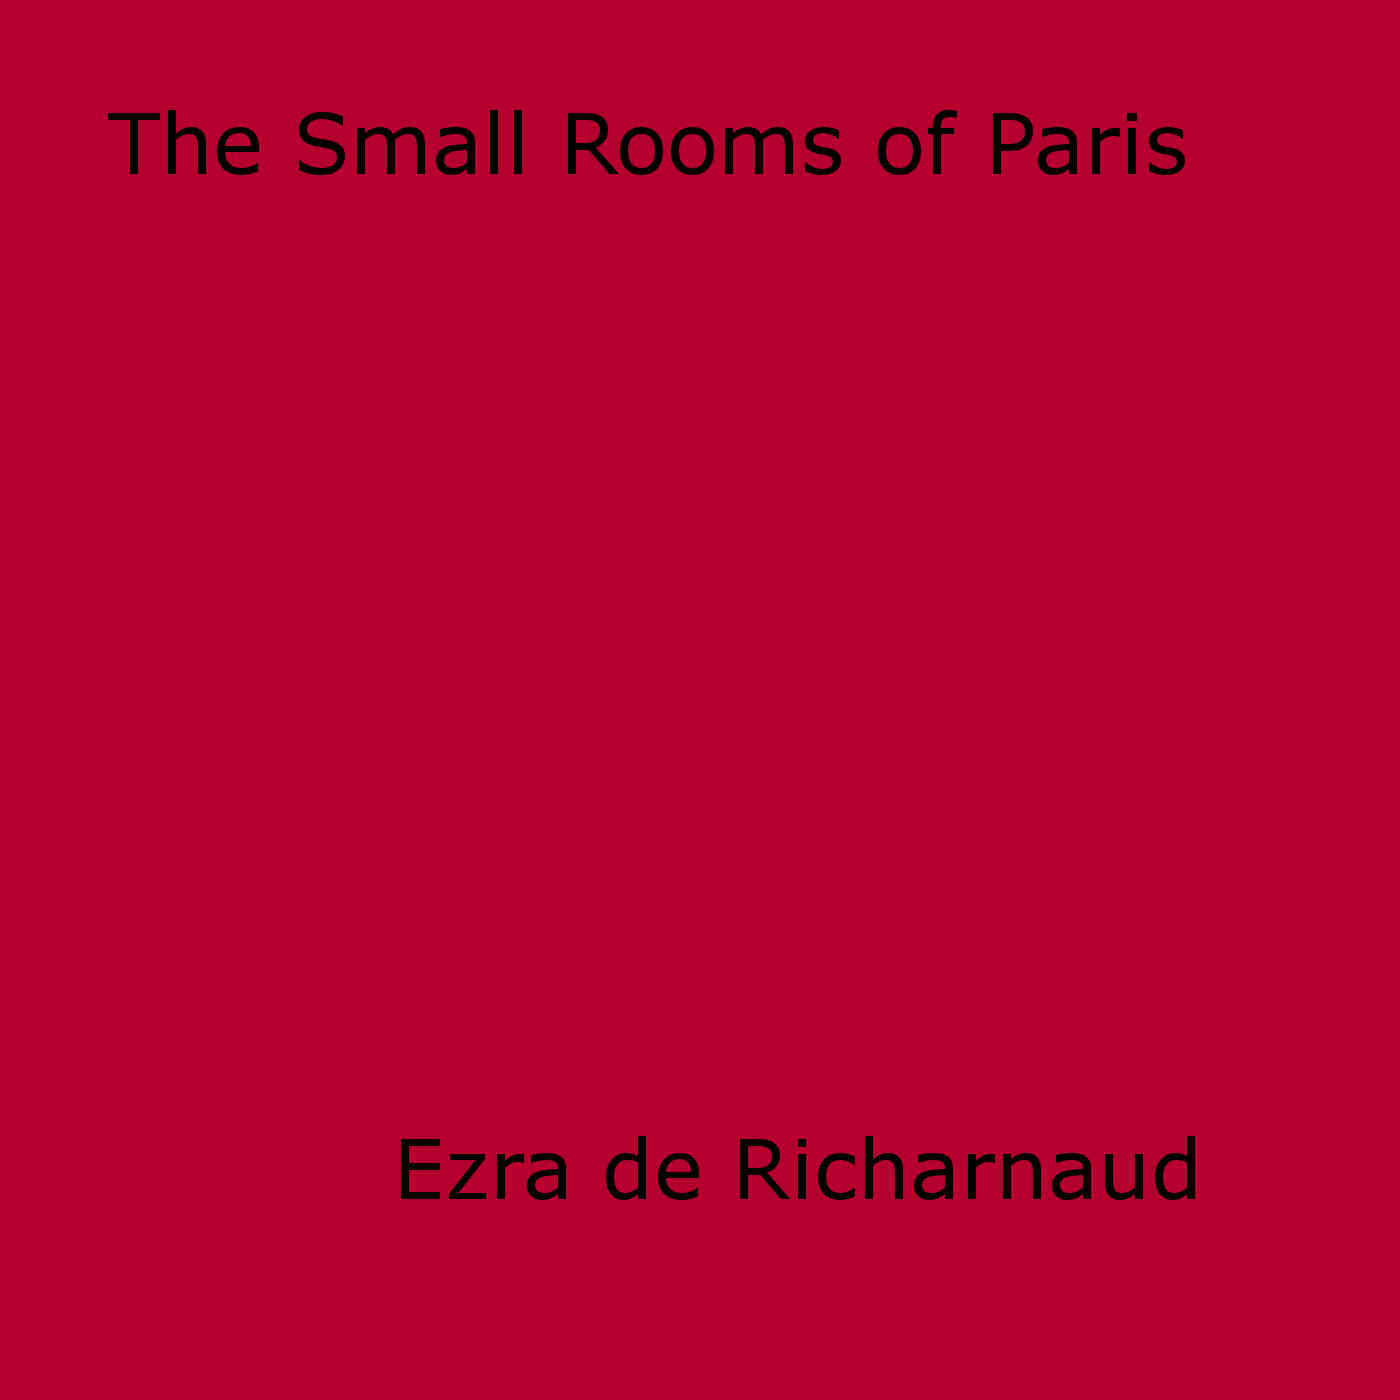 The Small Rooms of Paris